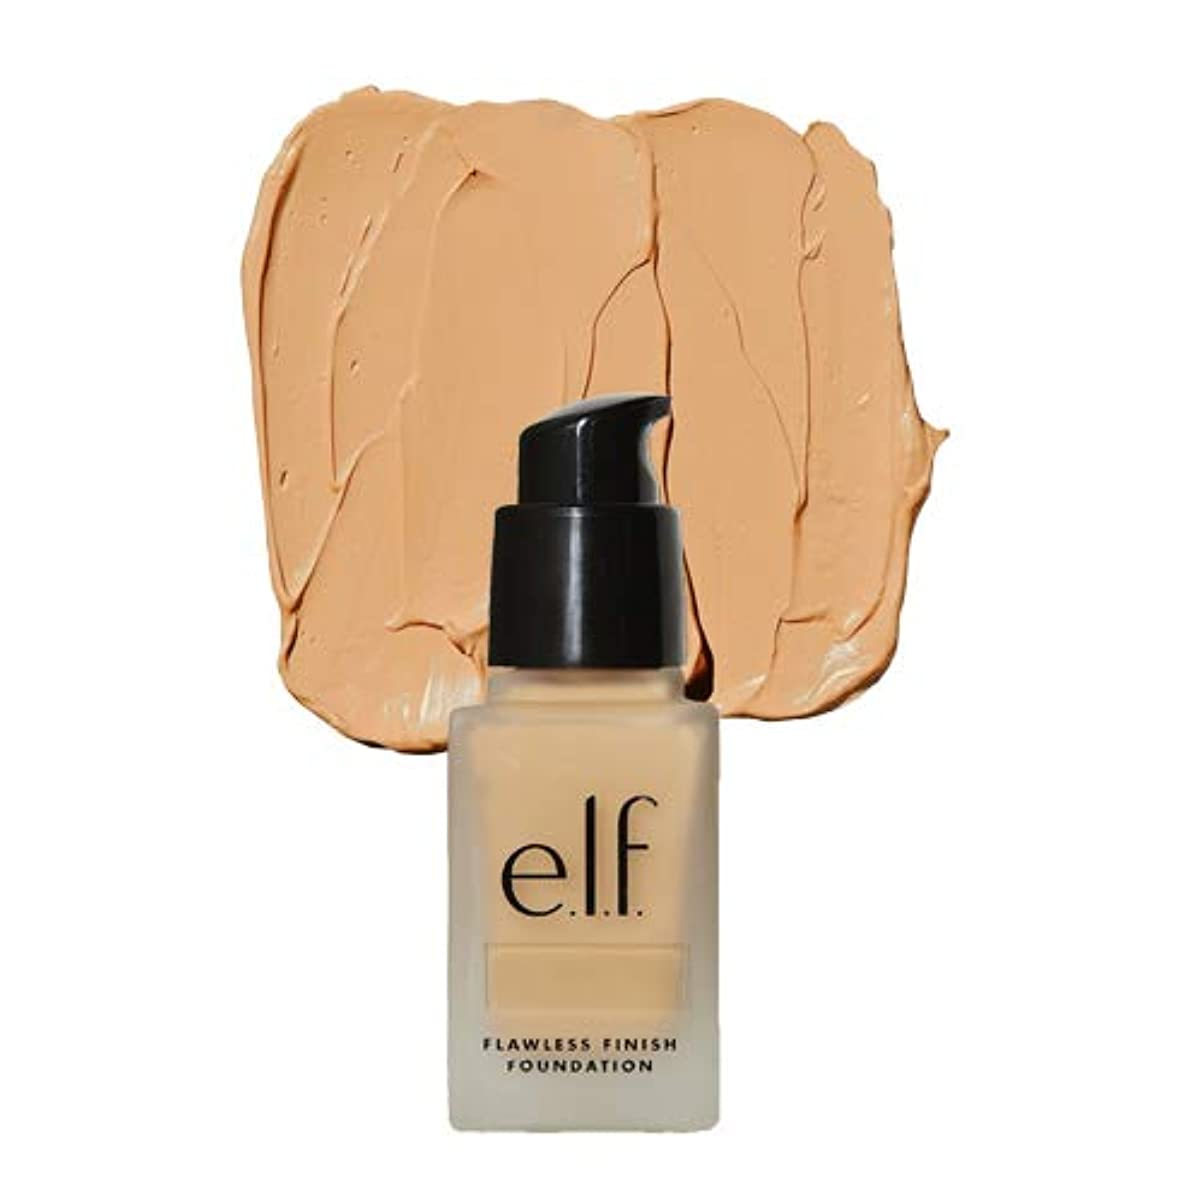 呼ぶ父方のマーベル(3 Pack) e.l.f. Oil Free Flawless Finish Foundation - Buff (並行輸入品)